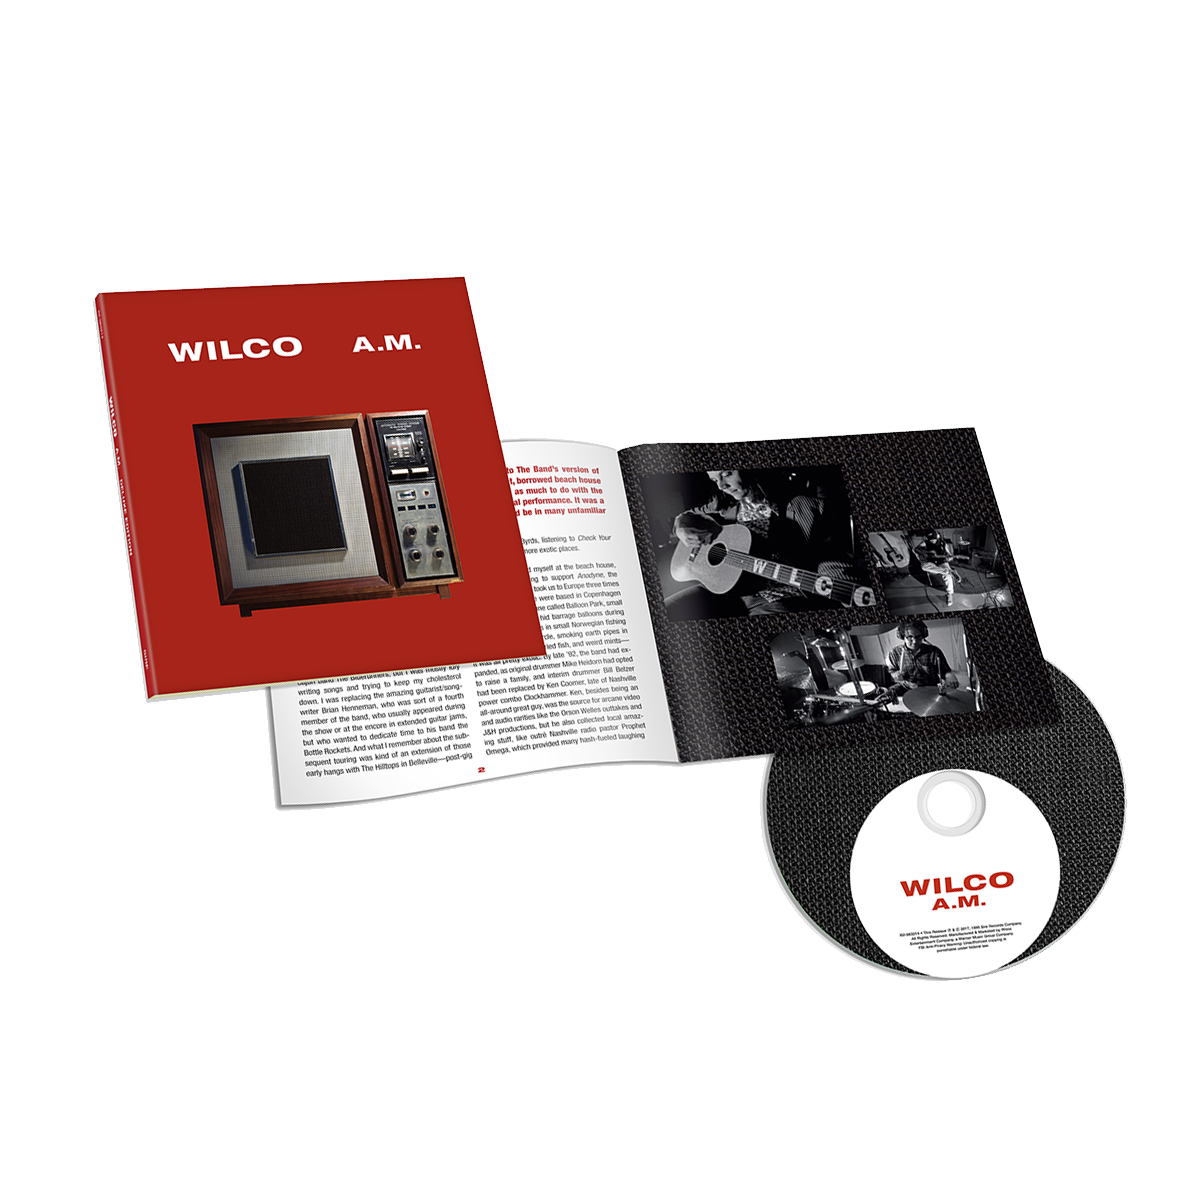 Wilco A.M. Deluxe Edition (CD) CD- Bingo Merch Official Merchandise Shop Official